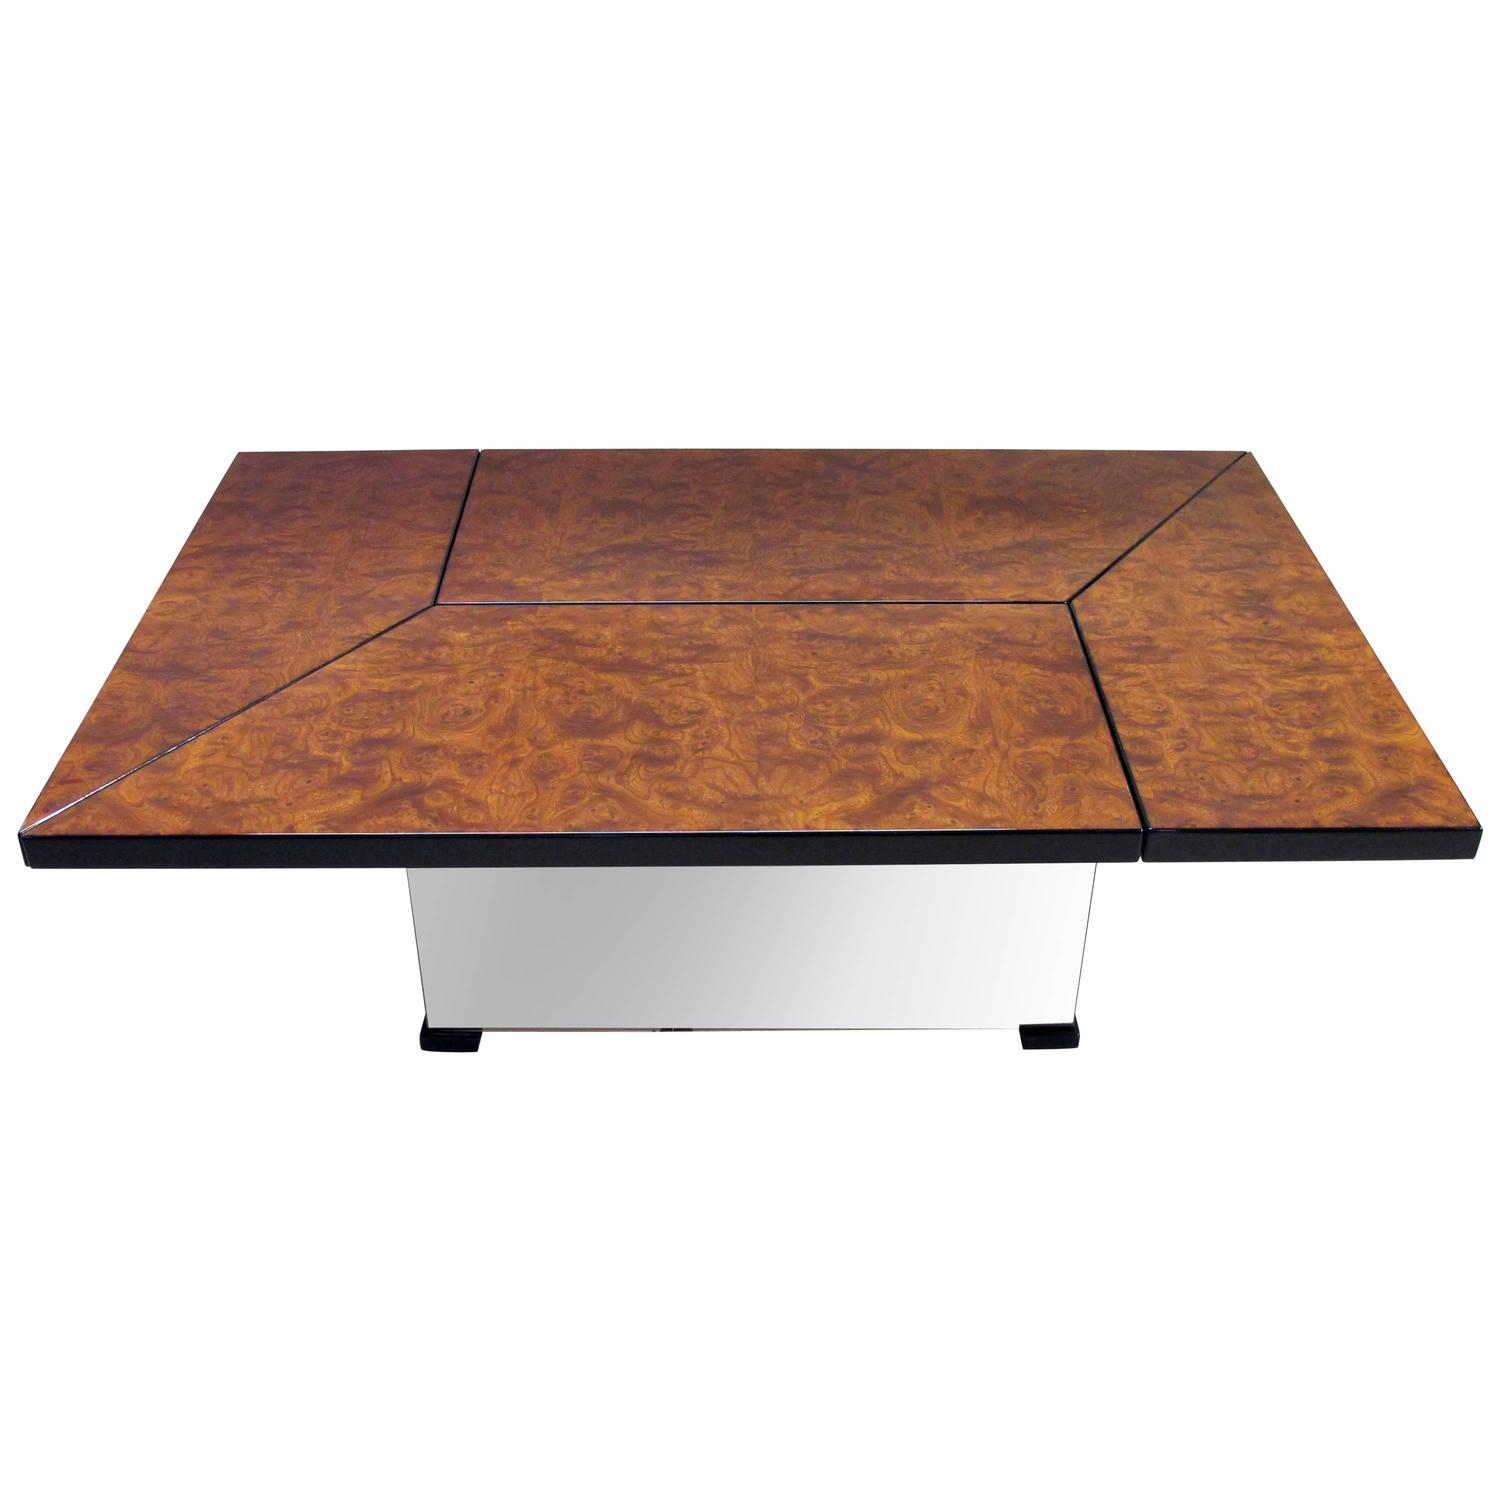 Paul Michel Burl Wood Coffee Table For Sale At 1stdibs # Muebles Curvasa